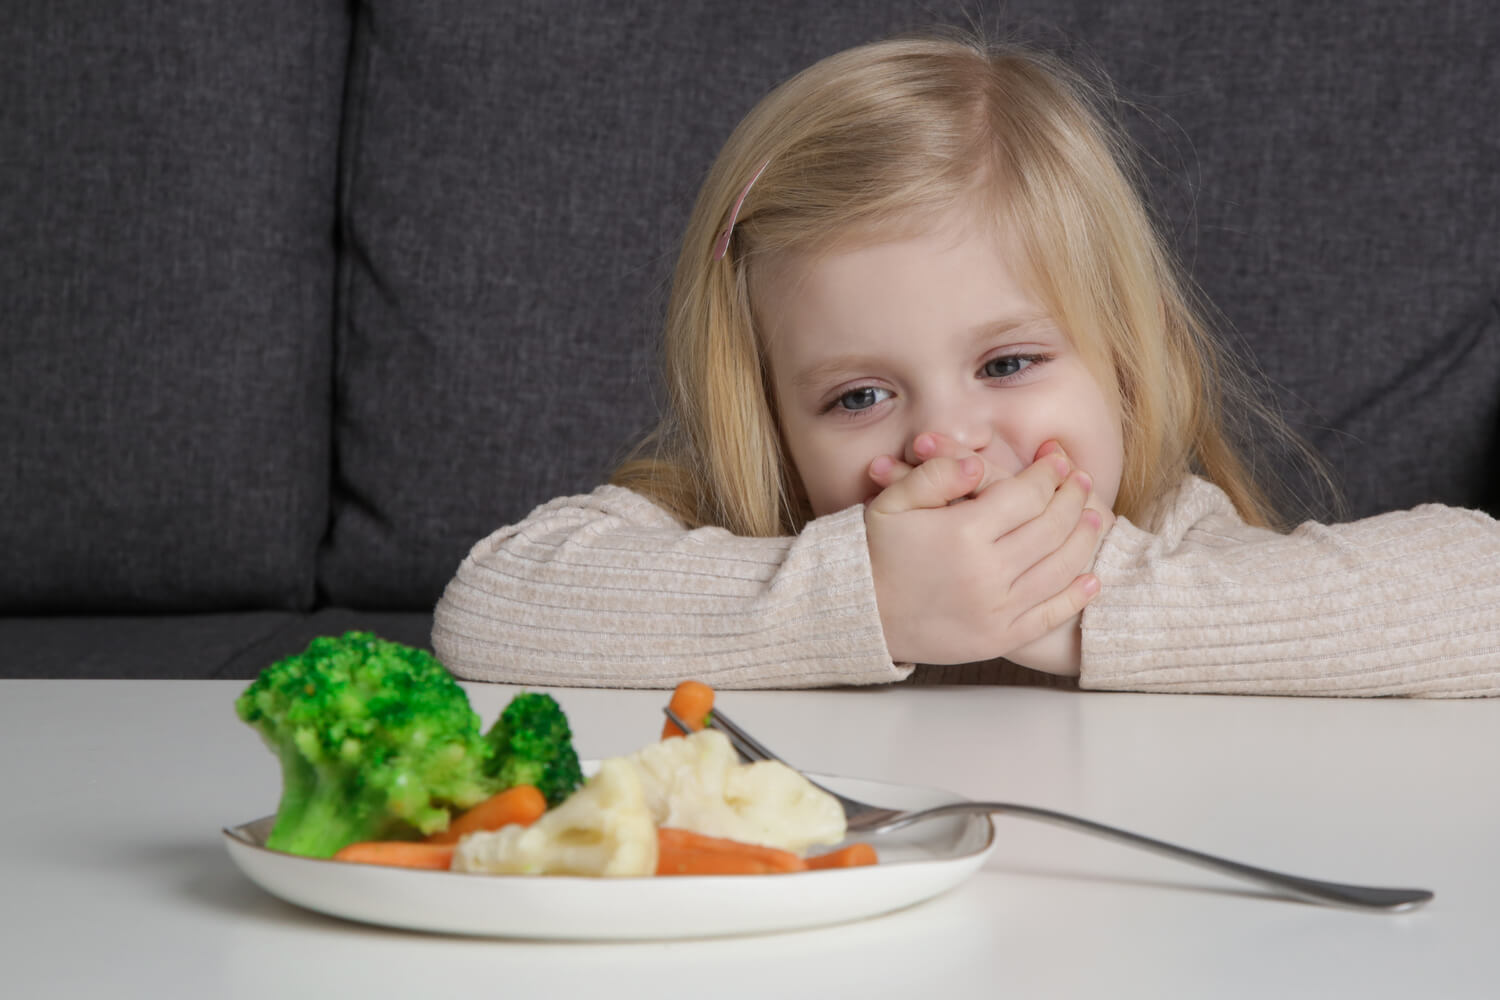 toddler is fussy in eating